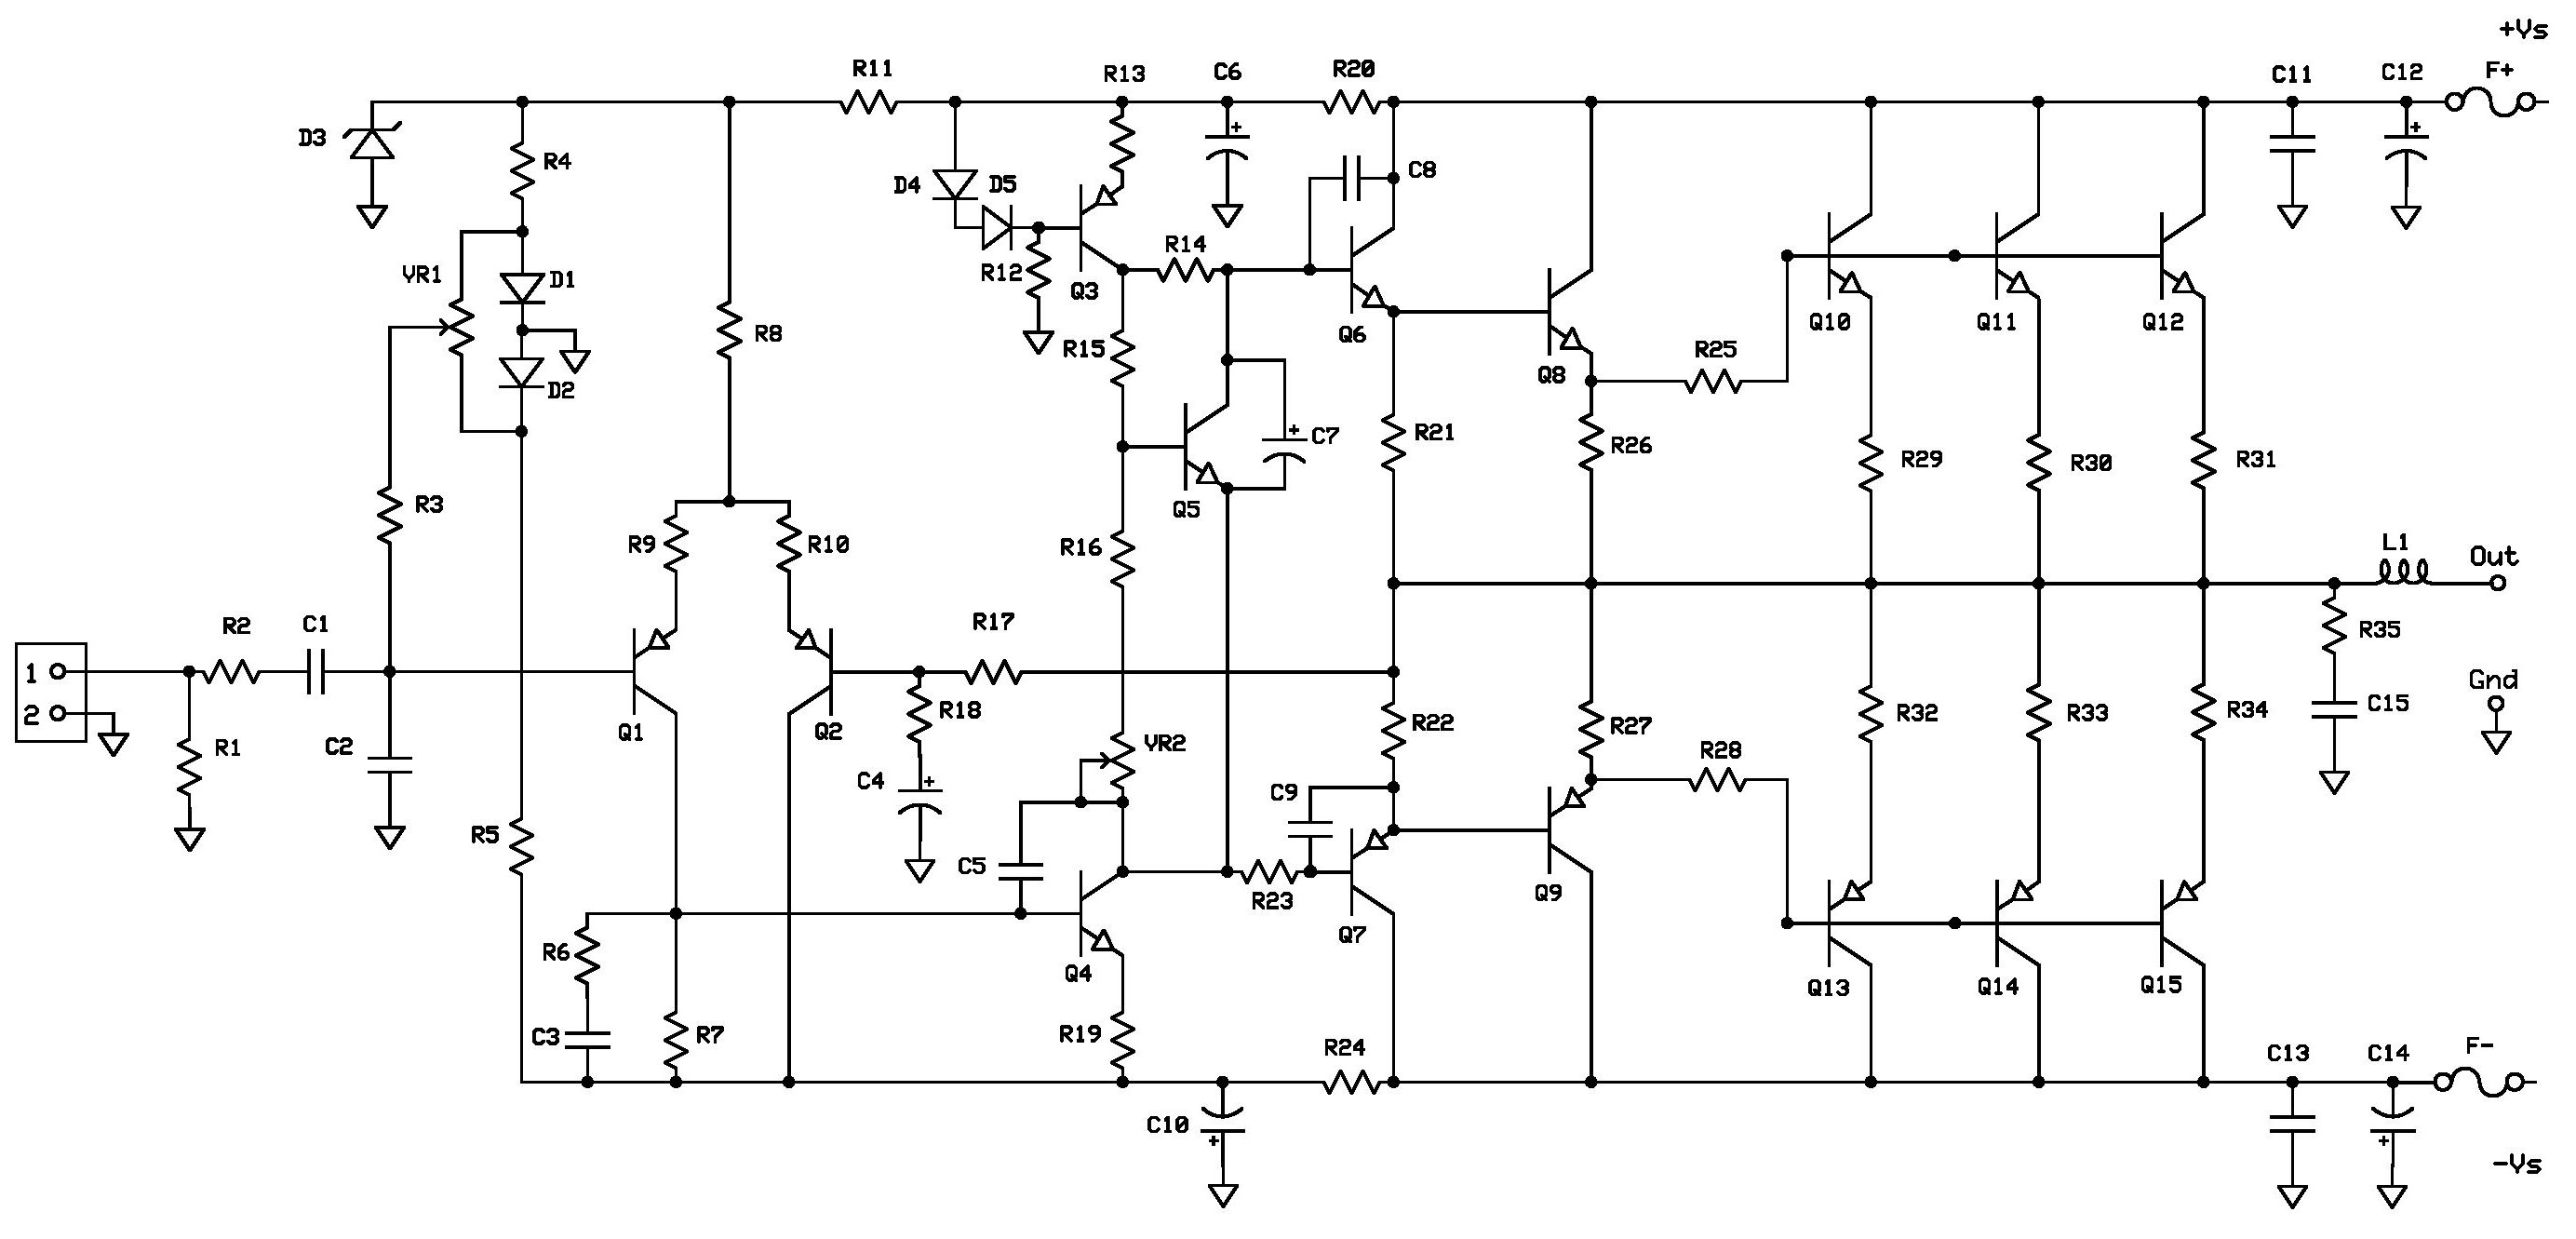 5 Watt Amplifier Circuit Diagram Wiring Library Tda2040 Car Stereo Project2 Schematic Page 001